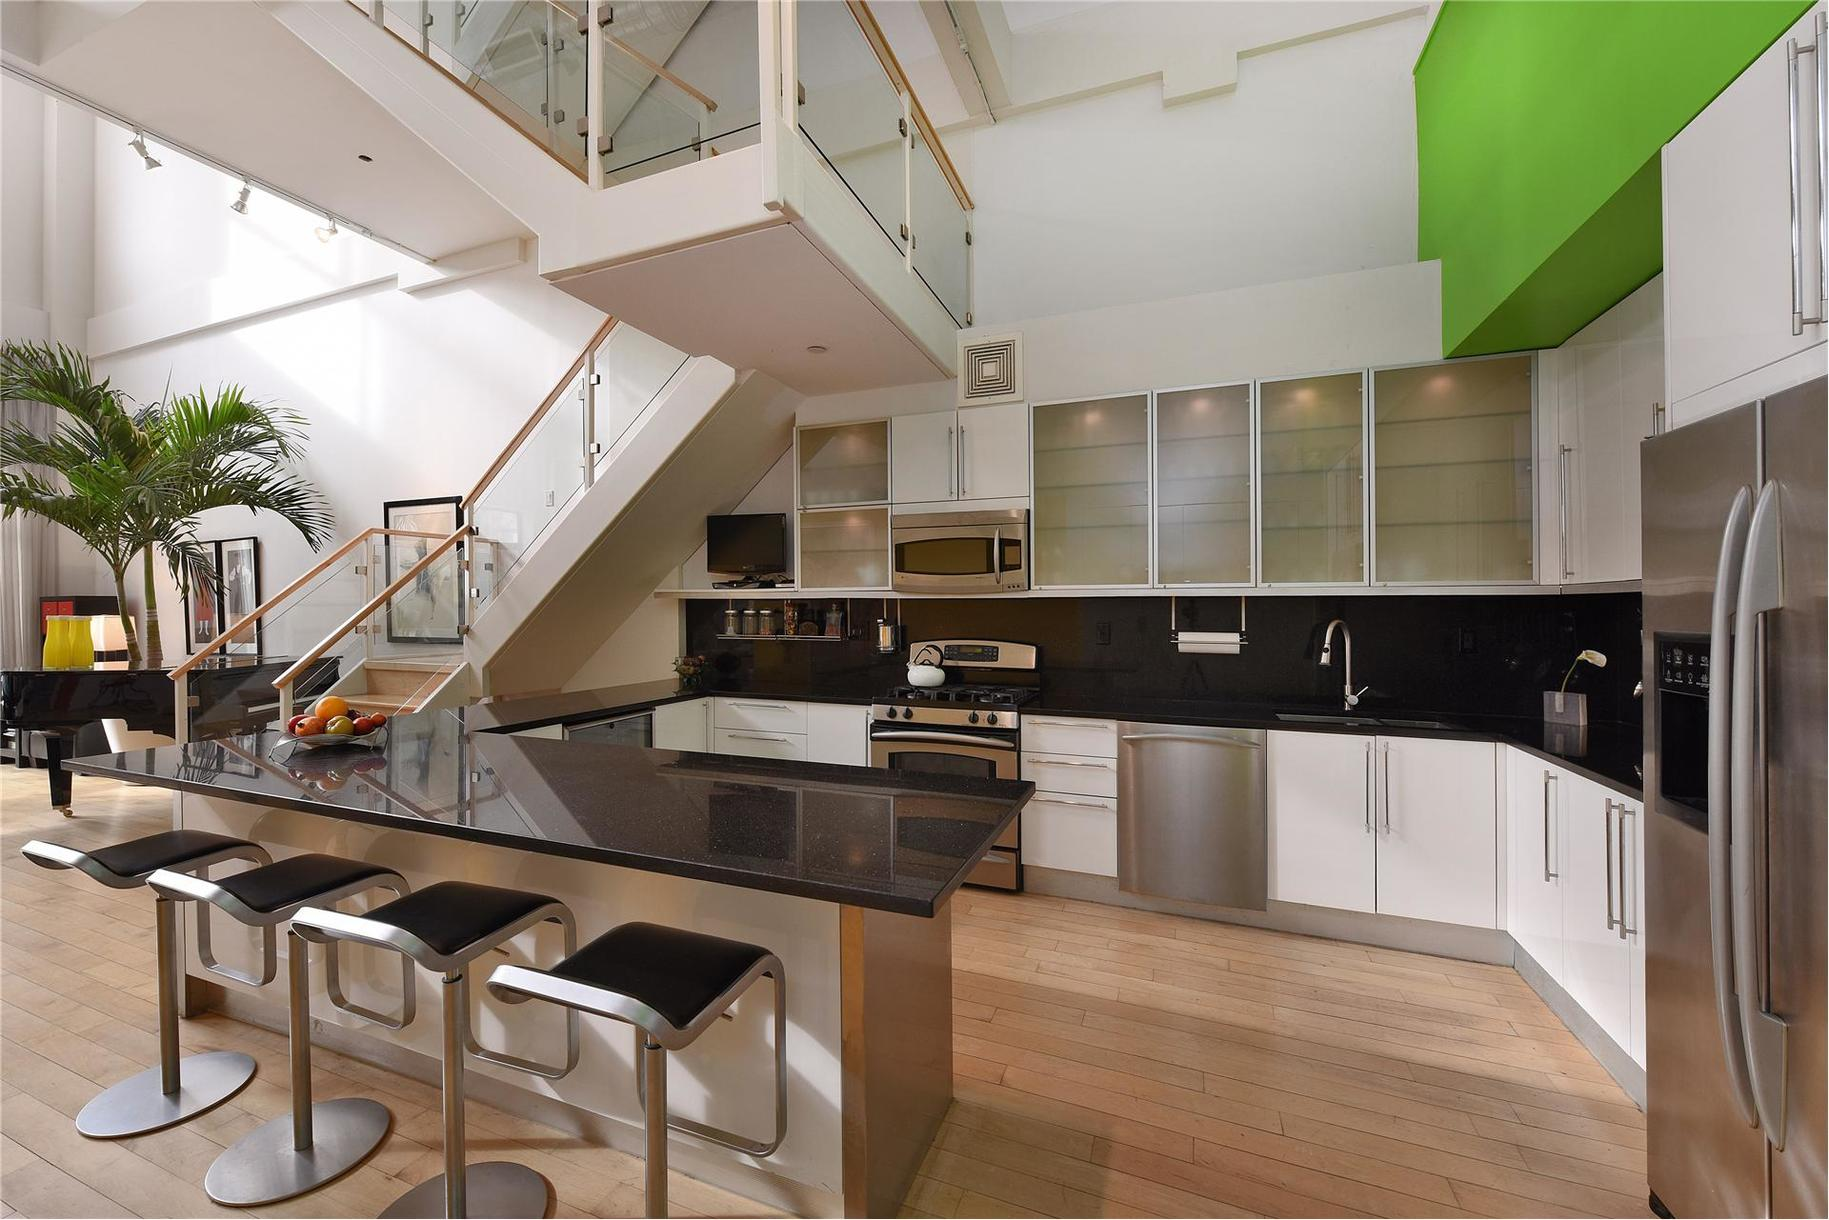 535 Dean Street, Newswalk, Prospect Heights, Theo Kalomirakis, Father of Home Theater, Brooklyn Loft for sale, Cool Listings, Duplex,